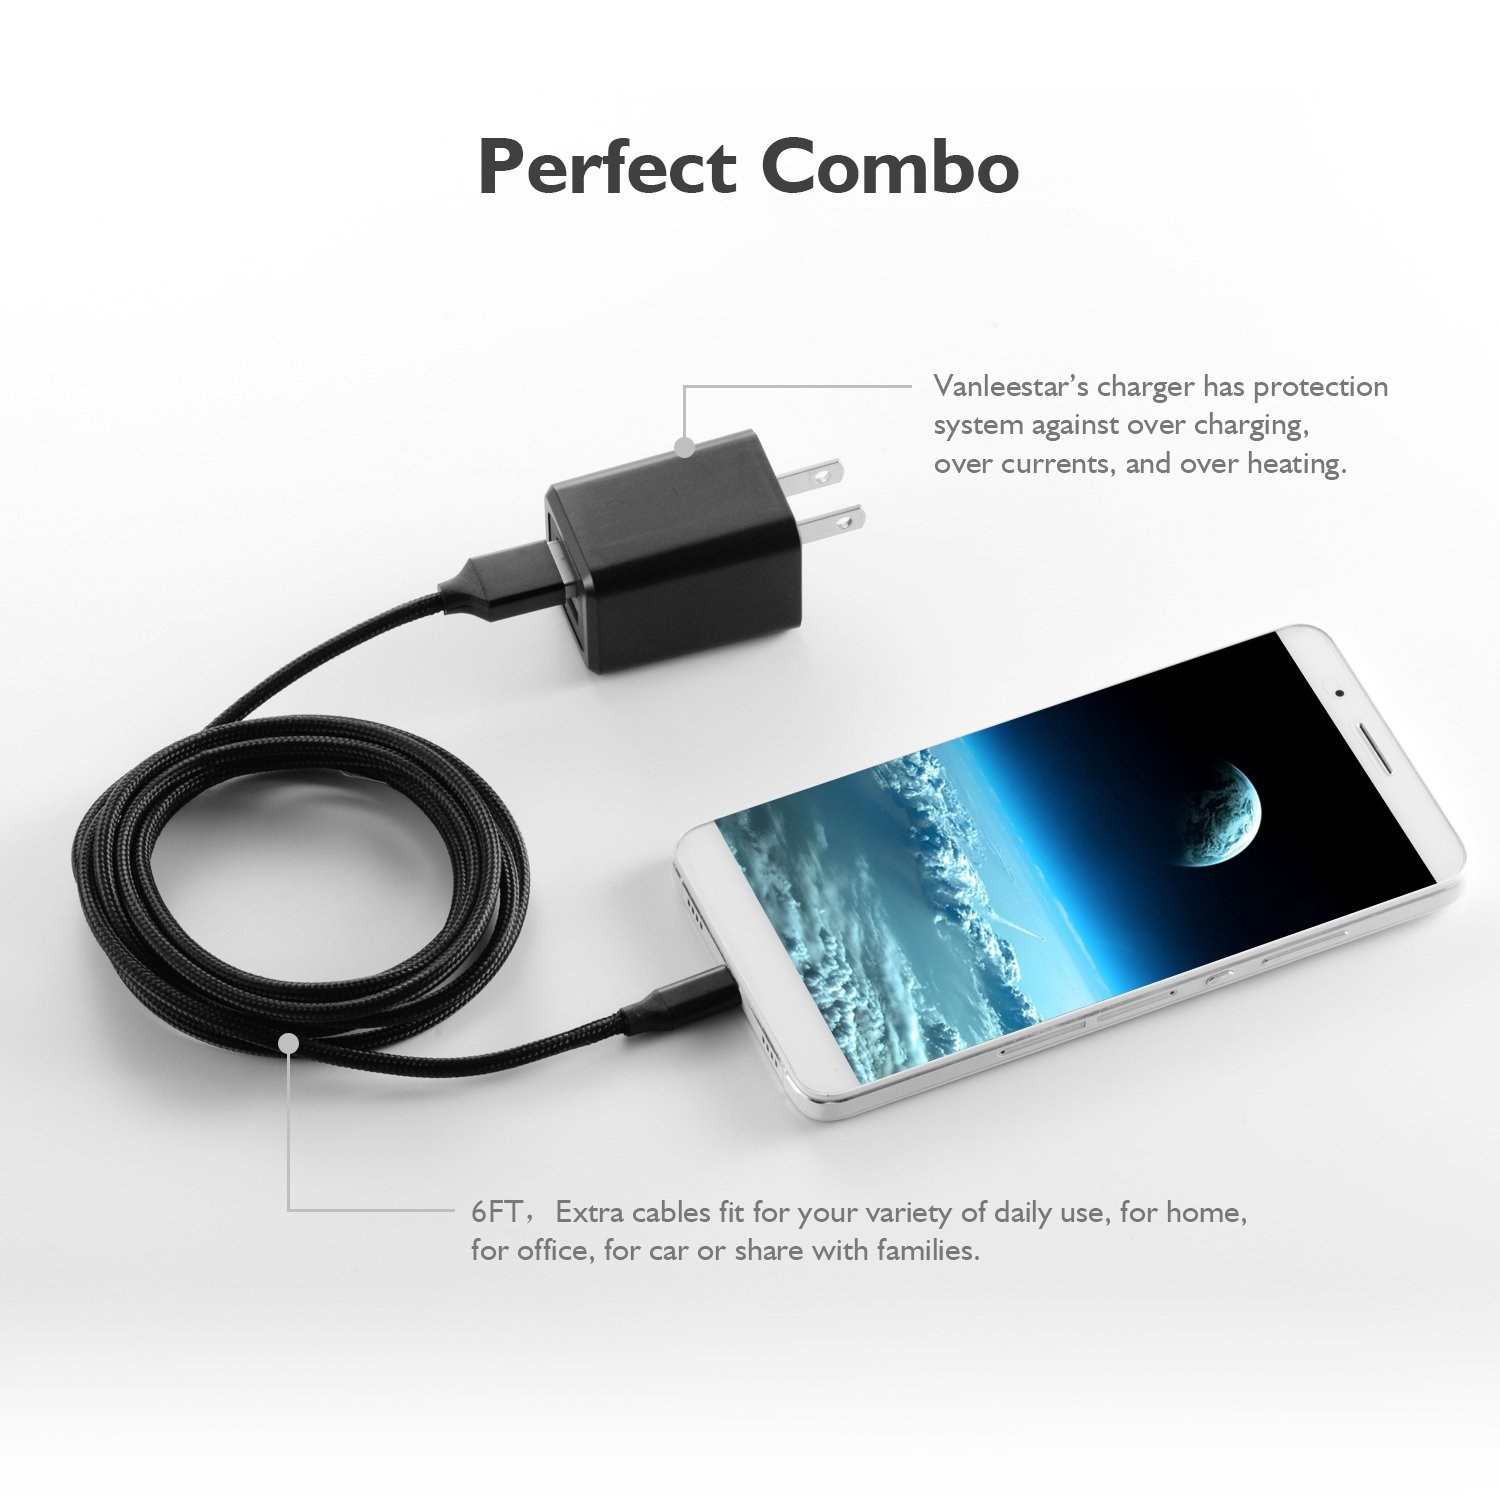 Amazon.com: Cable USB, cargador de pared, Vanleestar ...